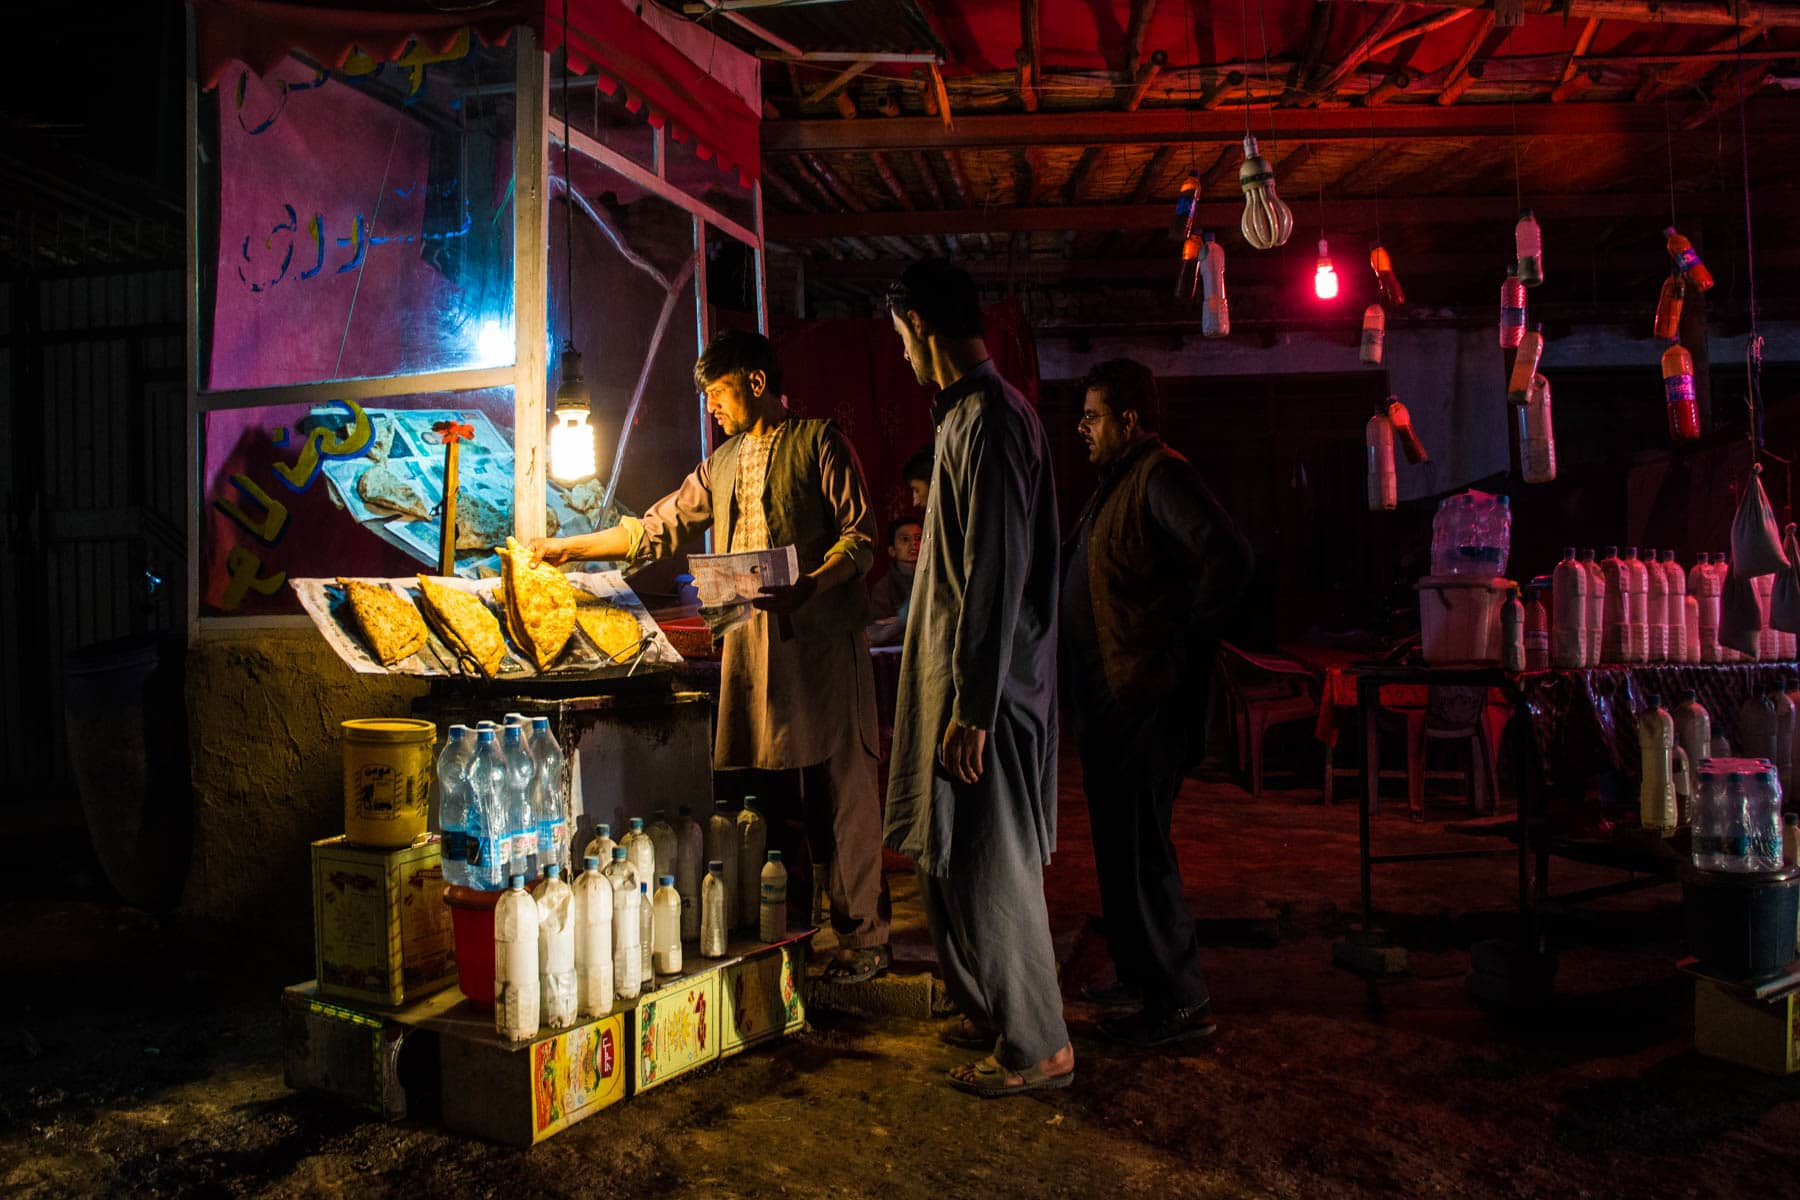 Getting food after dark in Kabul, Afghanistan - Lost With Purpose